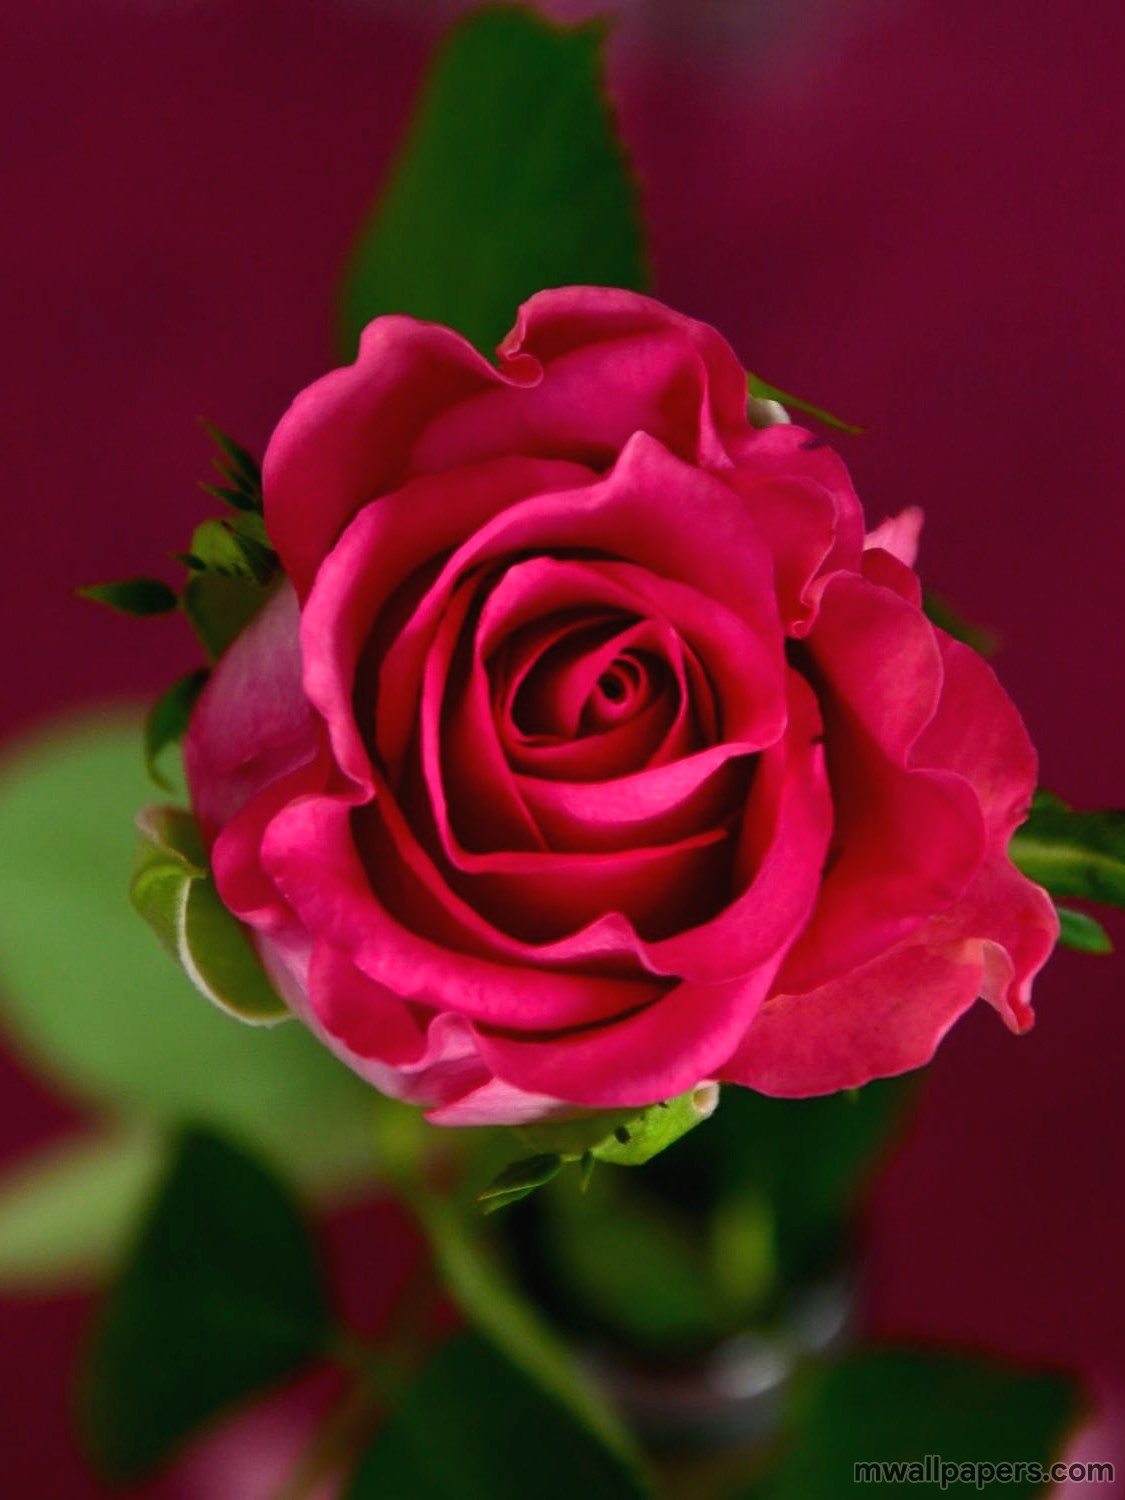 105 Red Rose Hd Images And Wallpapers 1080p 2019